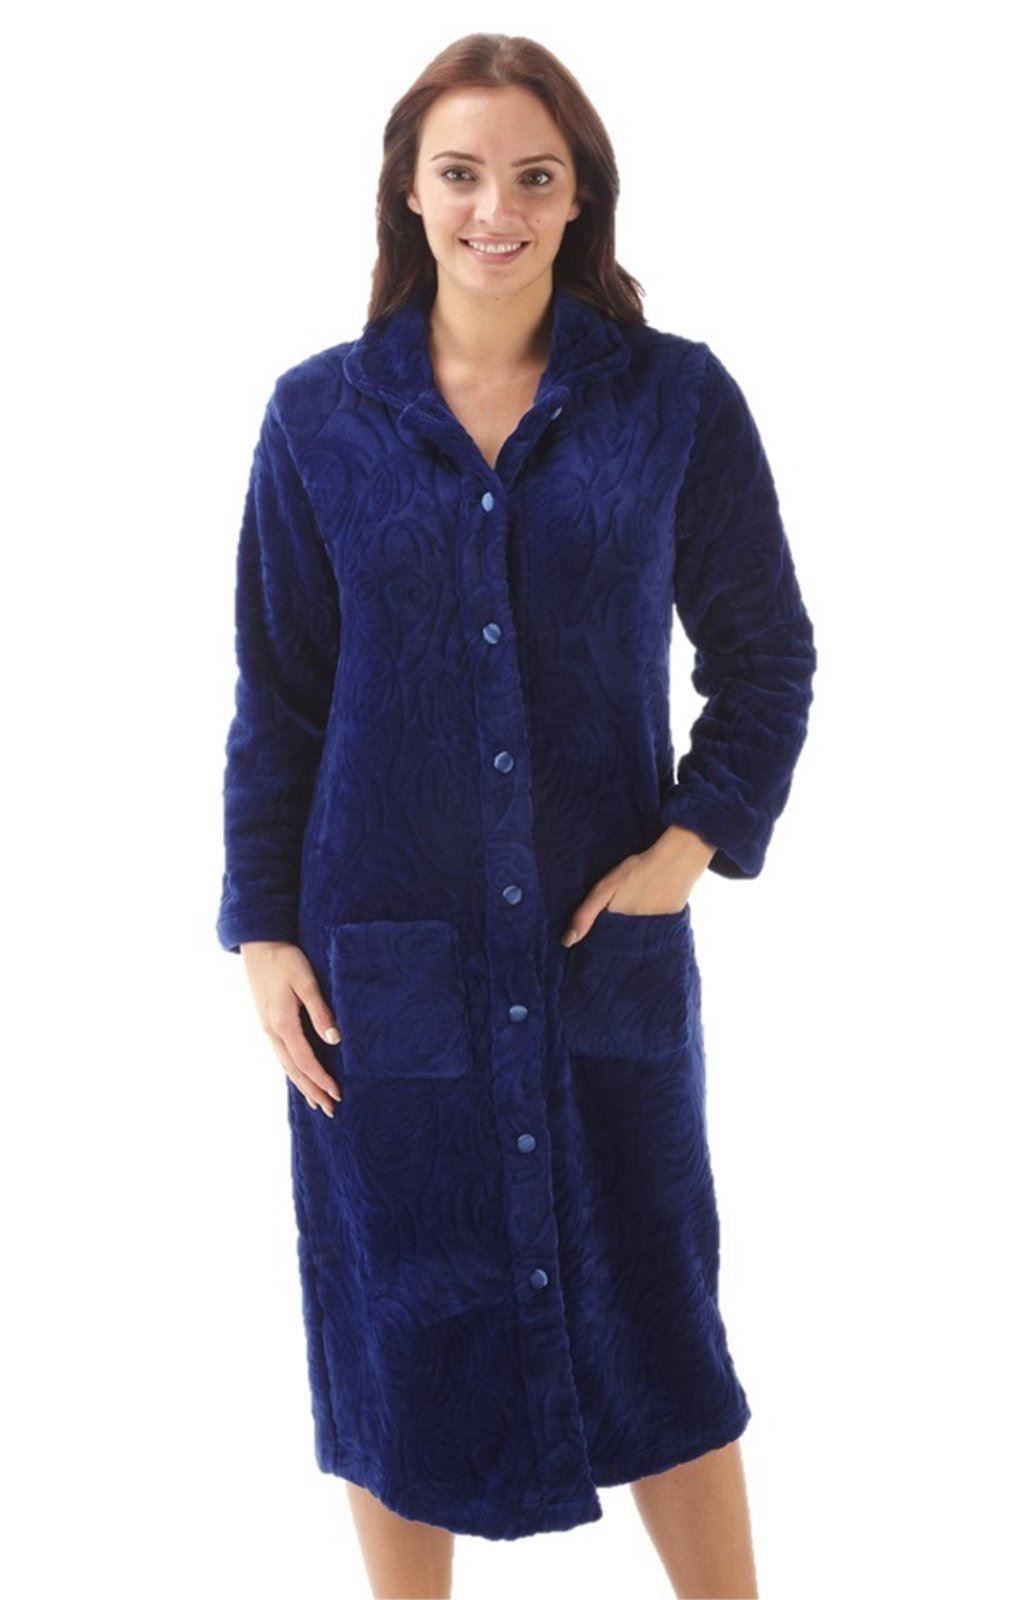 Find great deals on eBay for Womens Winter Robes in Sleepwear and Robes for Adult Women. Shop with confidence.